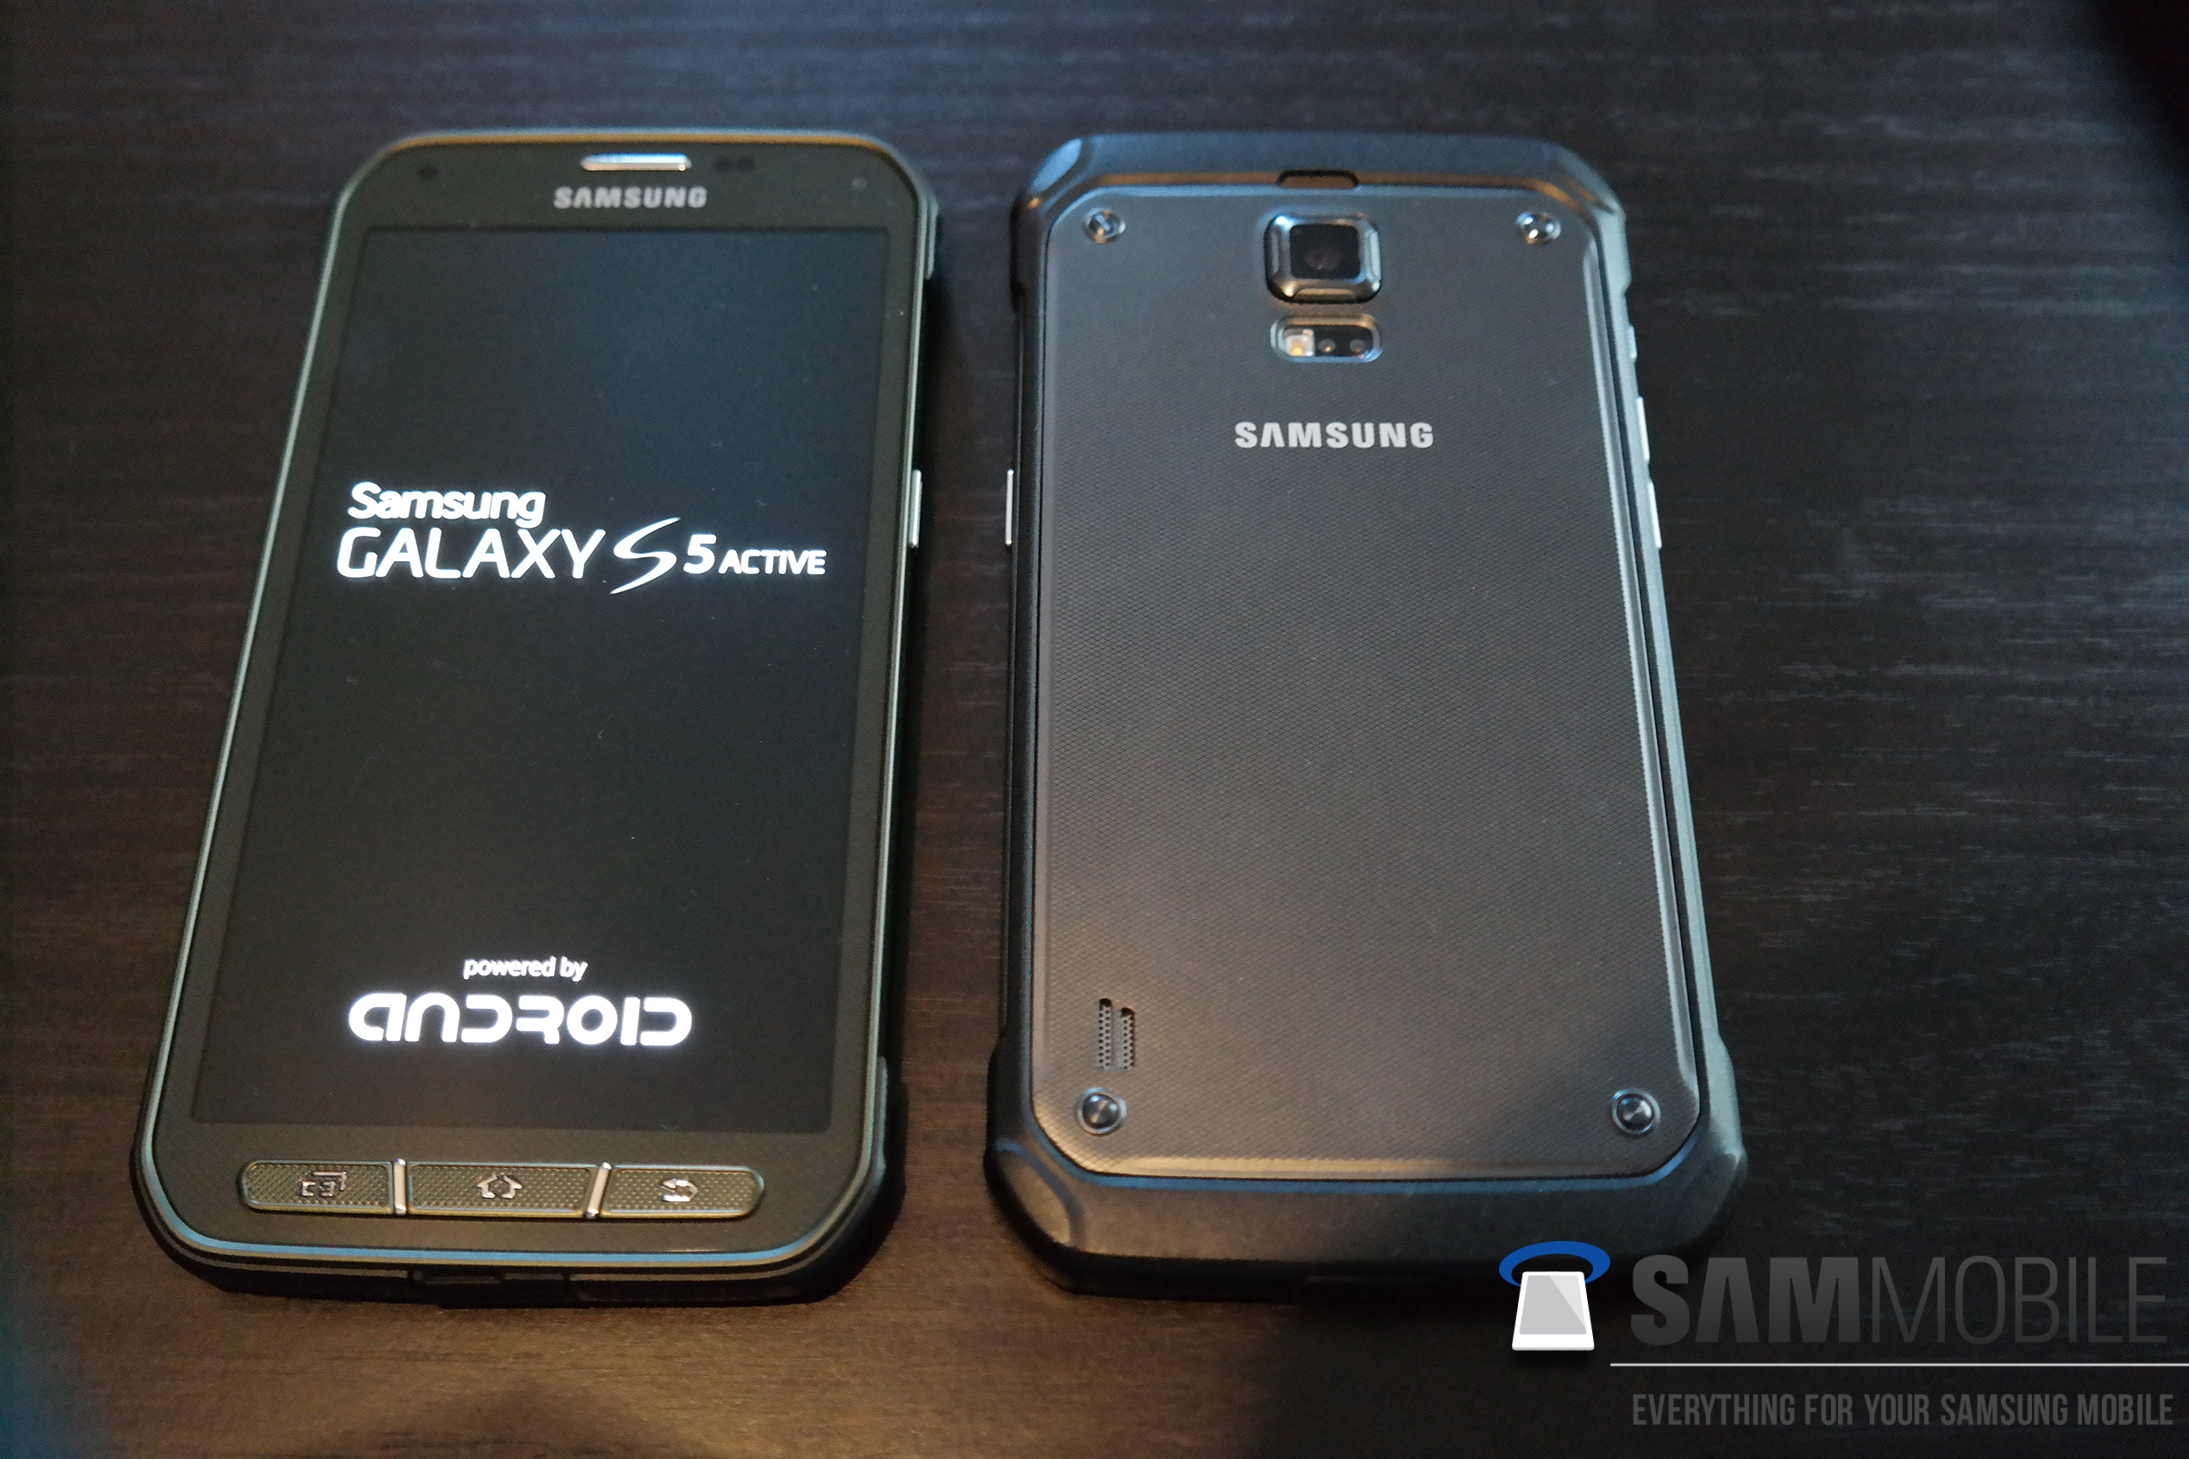 Exclusive: Samsung Galaxy S5 Active for Europe - SamMobile ...